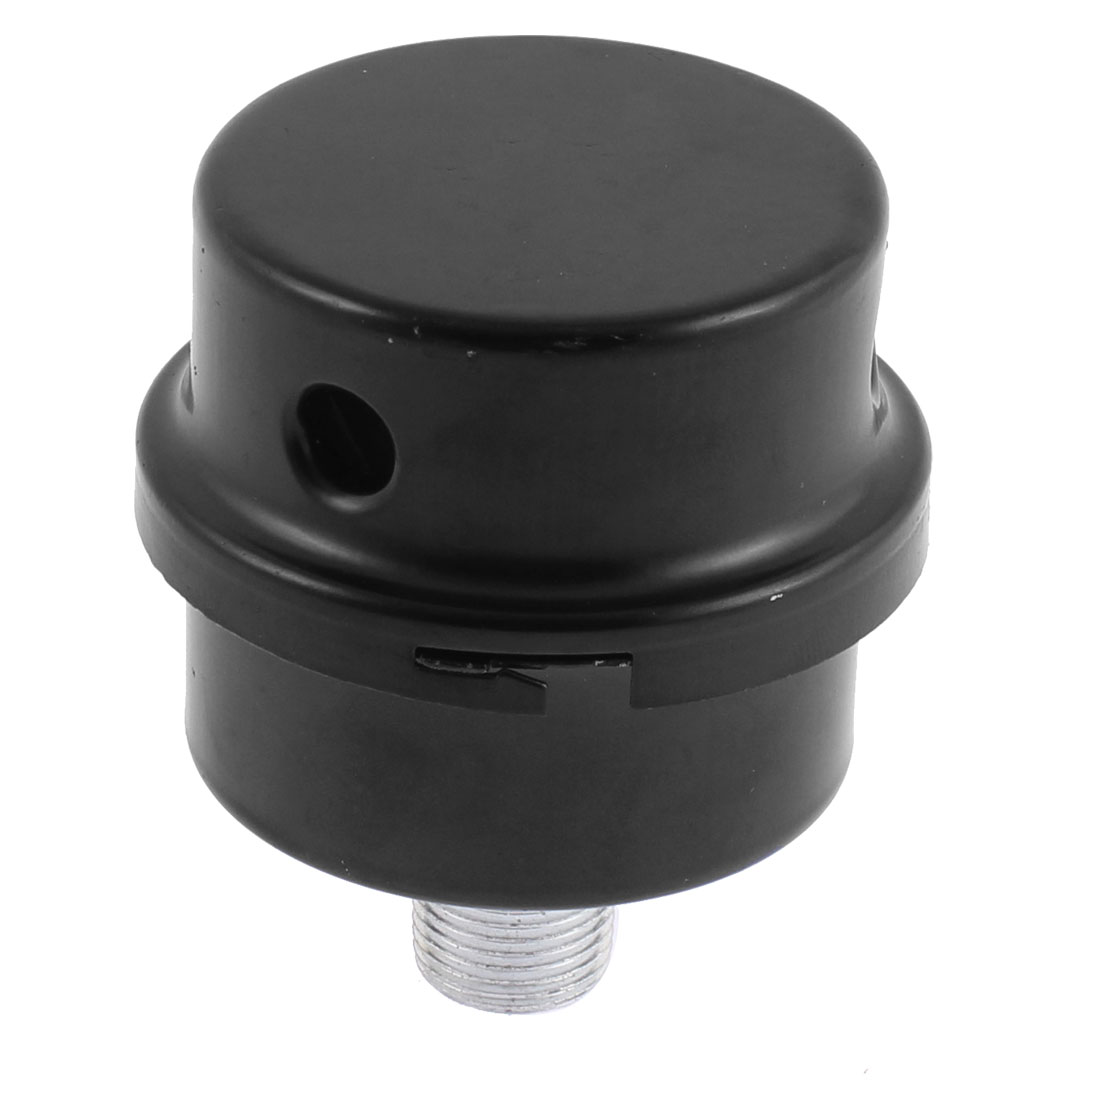 3/8 BSP 16mm Thread Diameter Black Metal Admitting Port Air Compressor Intake Filter Silencer Muffler